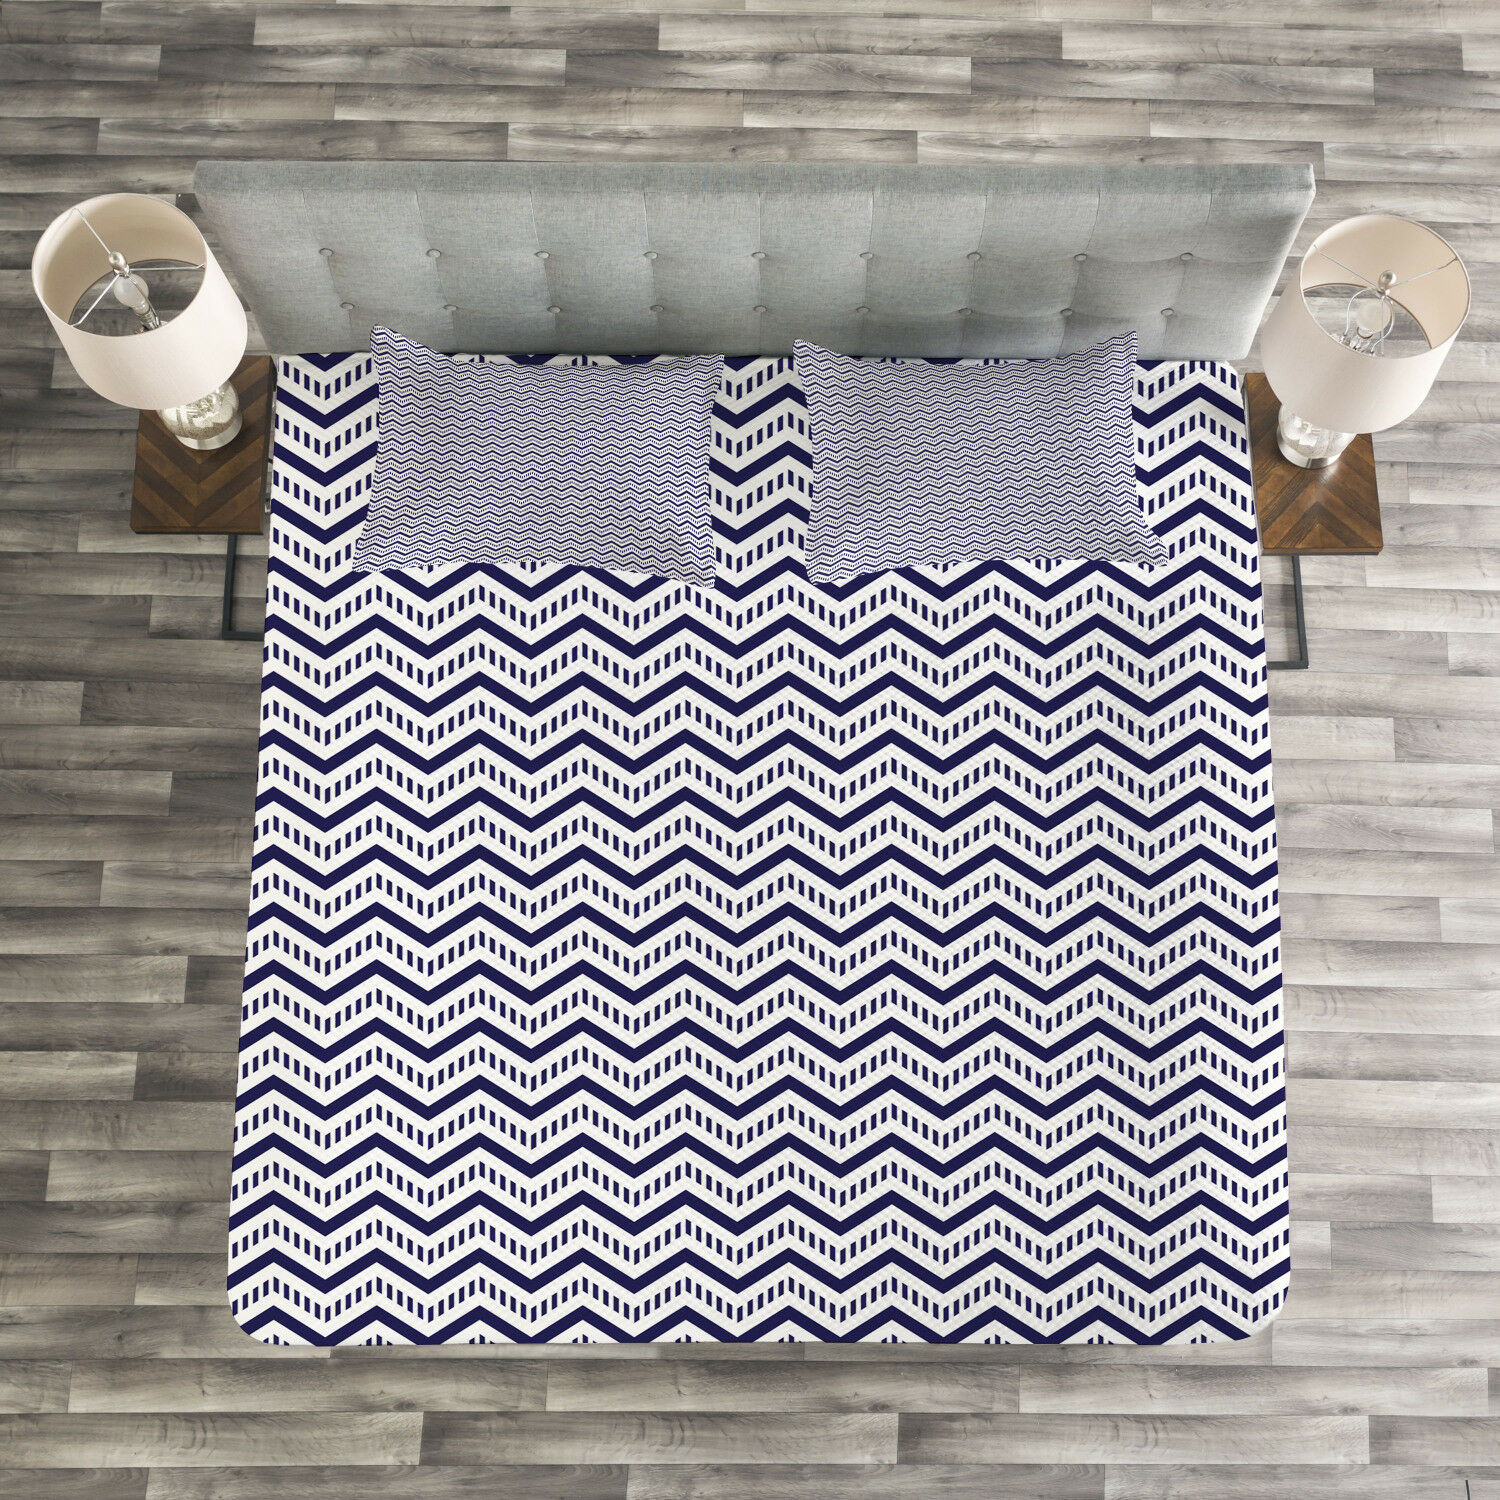 Navy blu Quilted Bedspread & Pillow Shams Set, Chevron Dashed Lines Print